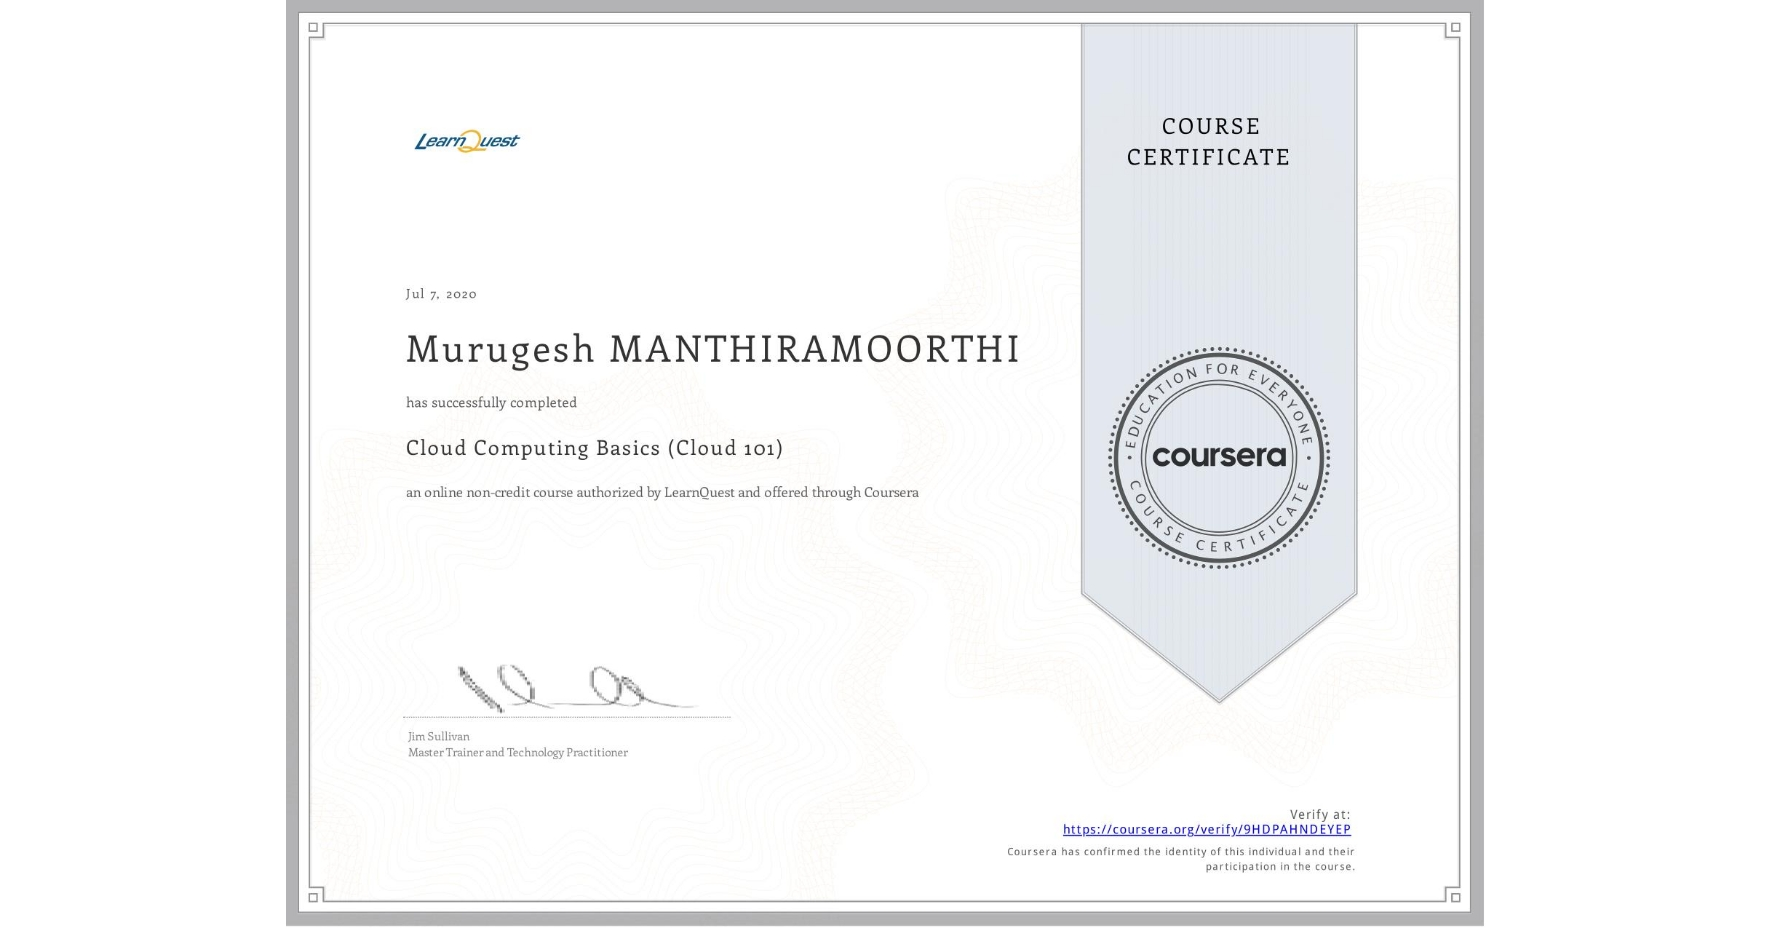 View certificate for Murugesh Manthiramoorthi, Cloud Computing Basics (Cloud 101), an online non-credit course authorized by LearnQuest and offered through Coursera